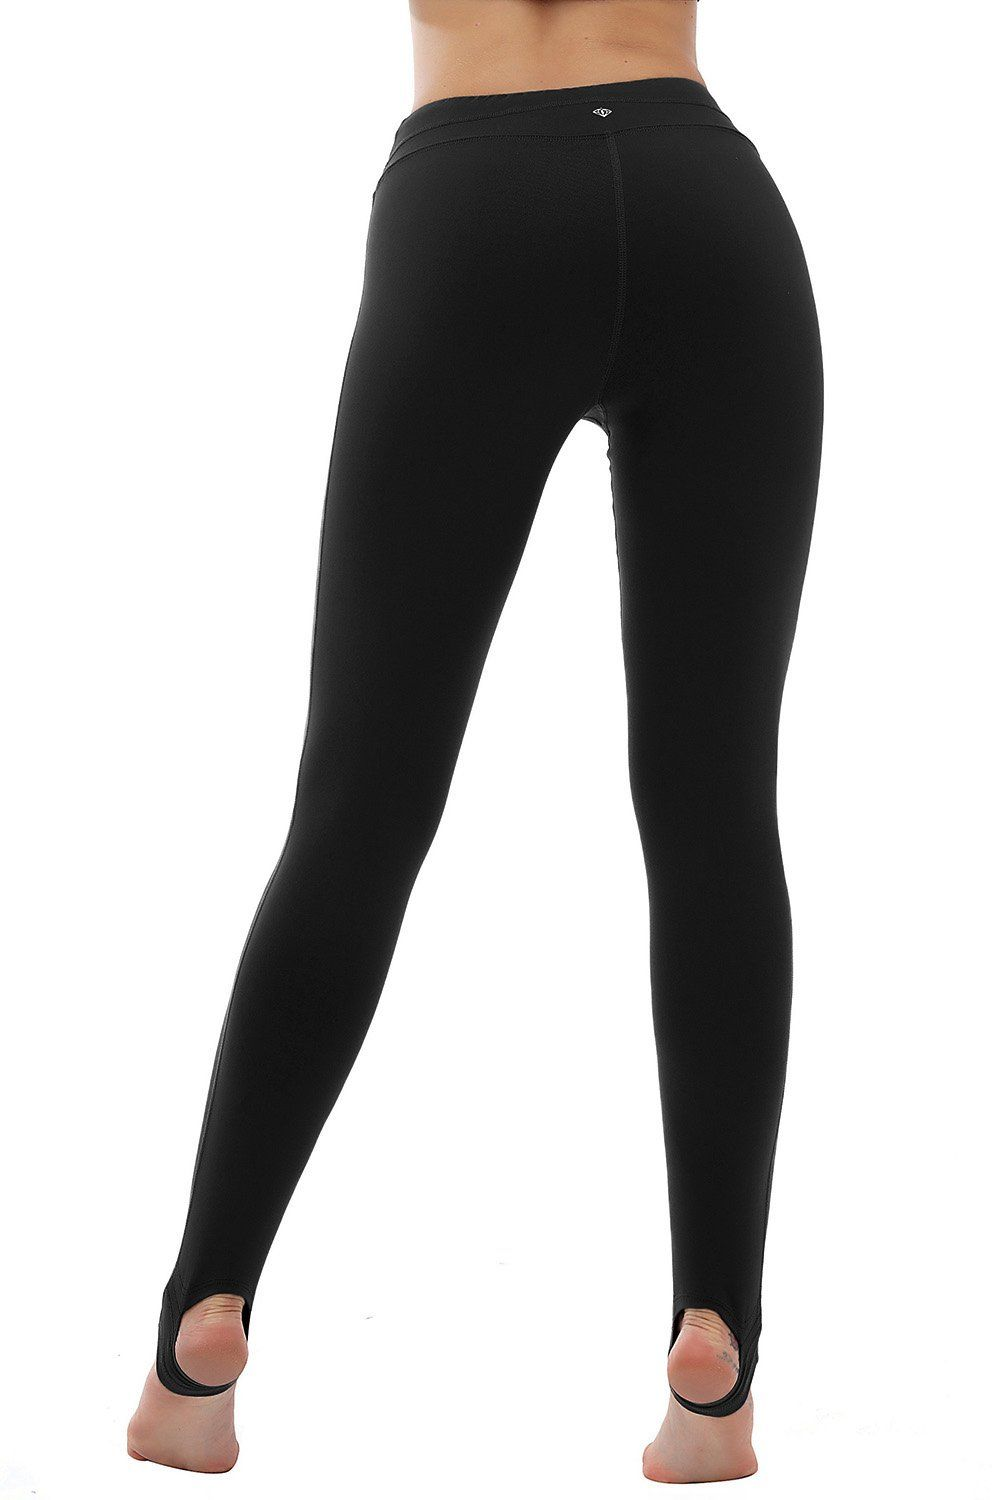 5e03883013fe1 PINKPHOENIXFLY Womens Stirrup Yoga Pants Active Barre Gym Workout Sports  Leggings Large/10/12 Black >>> Be sure to check out this awesome product.